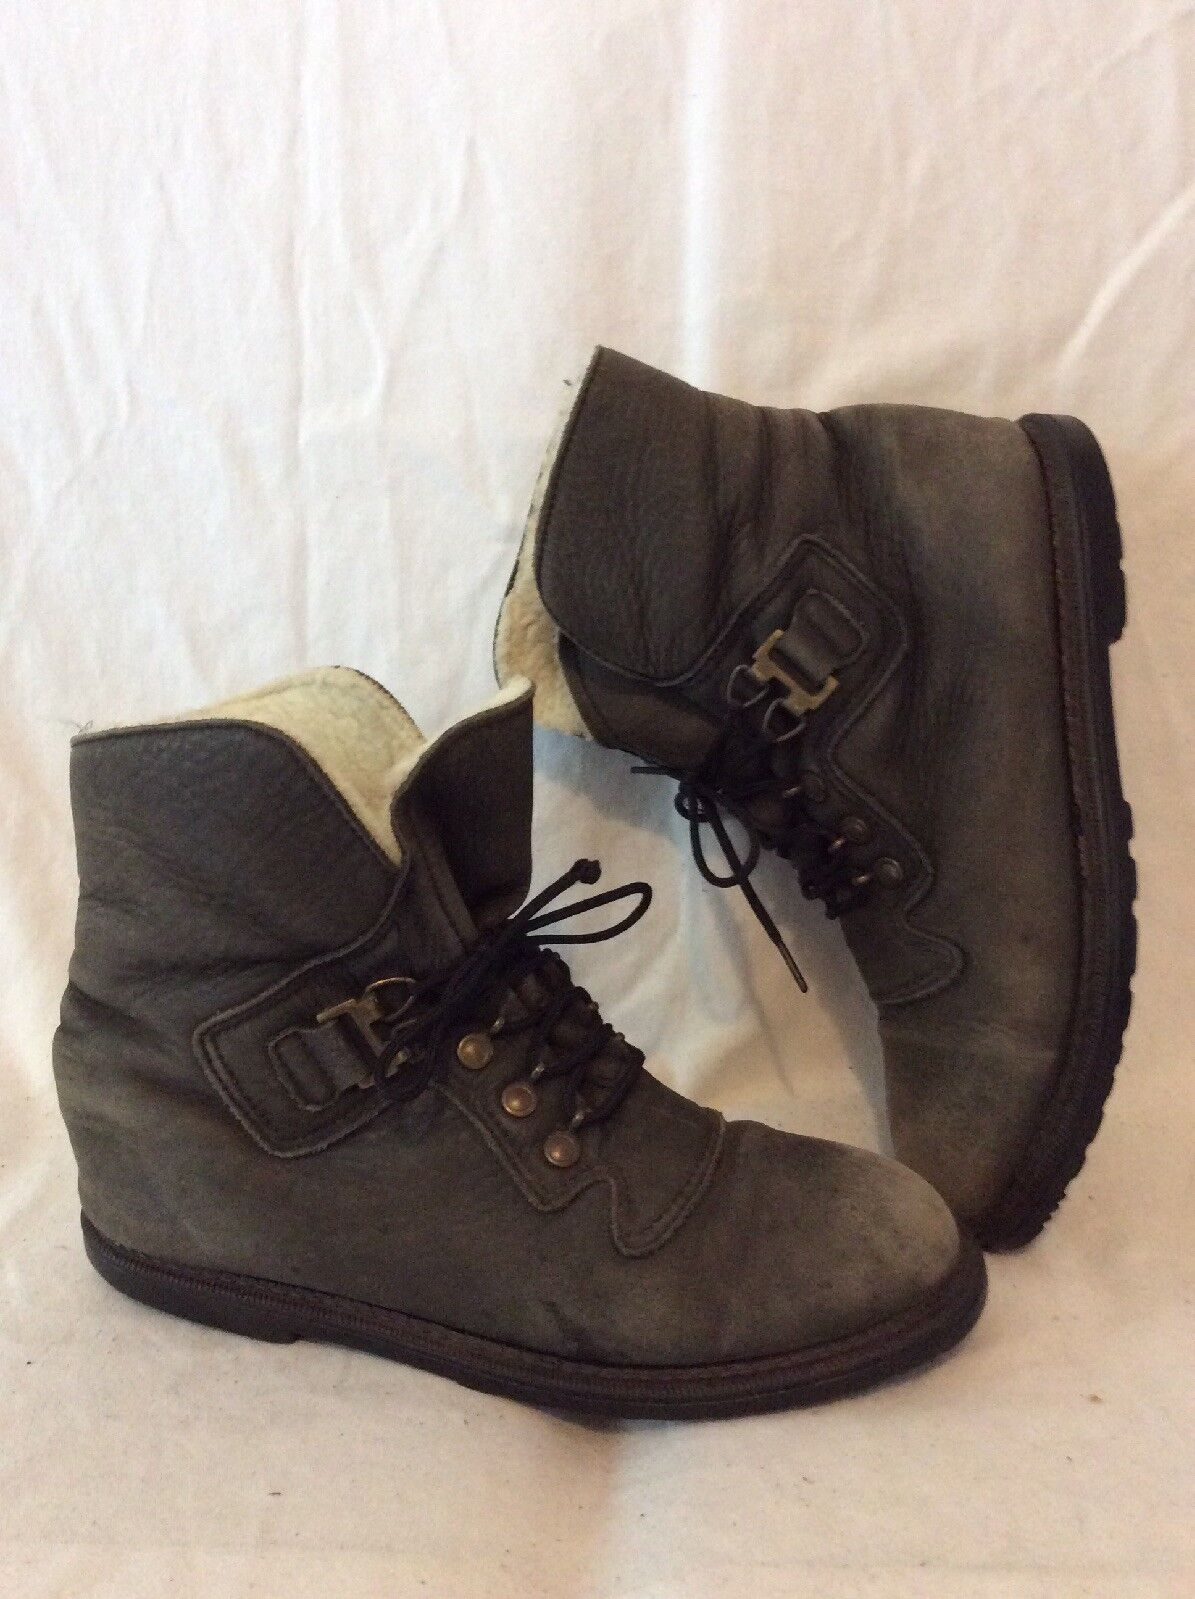 DEFROSTERS Khaki Ankle Leather Boots Size 8